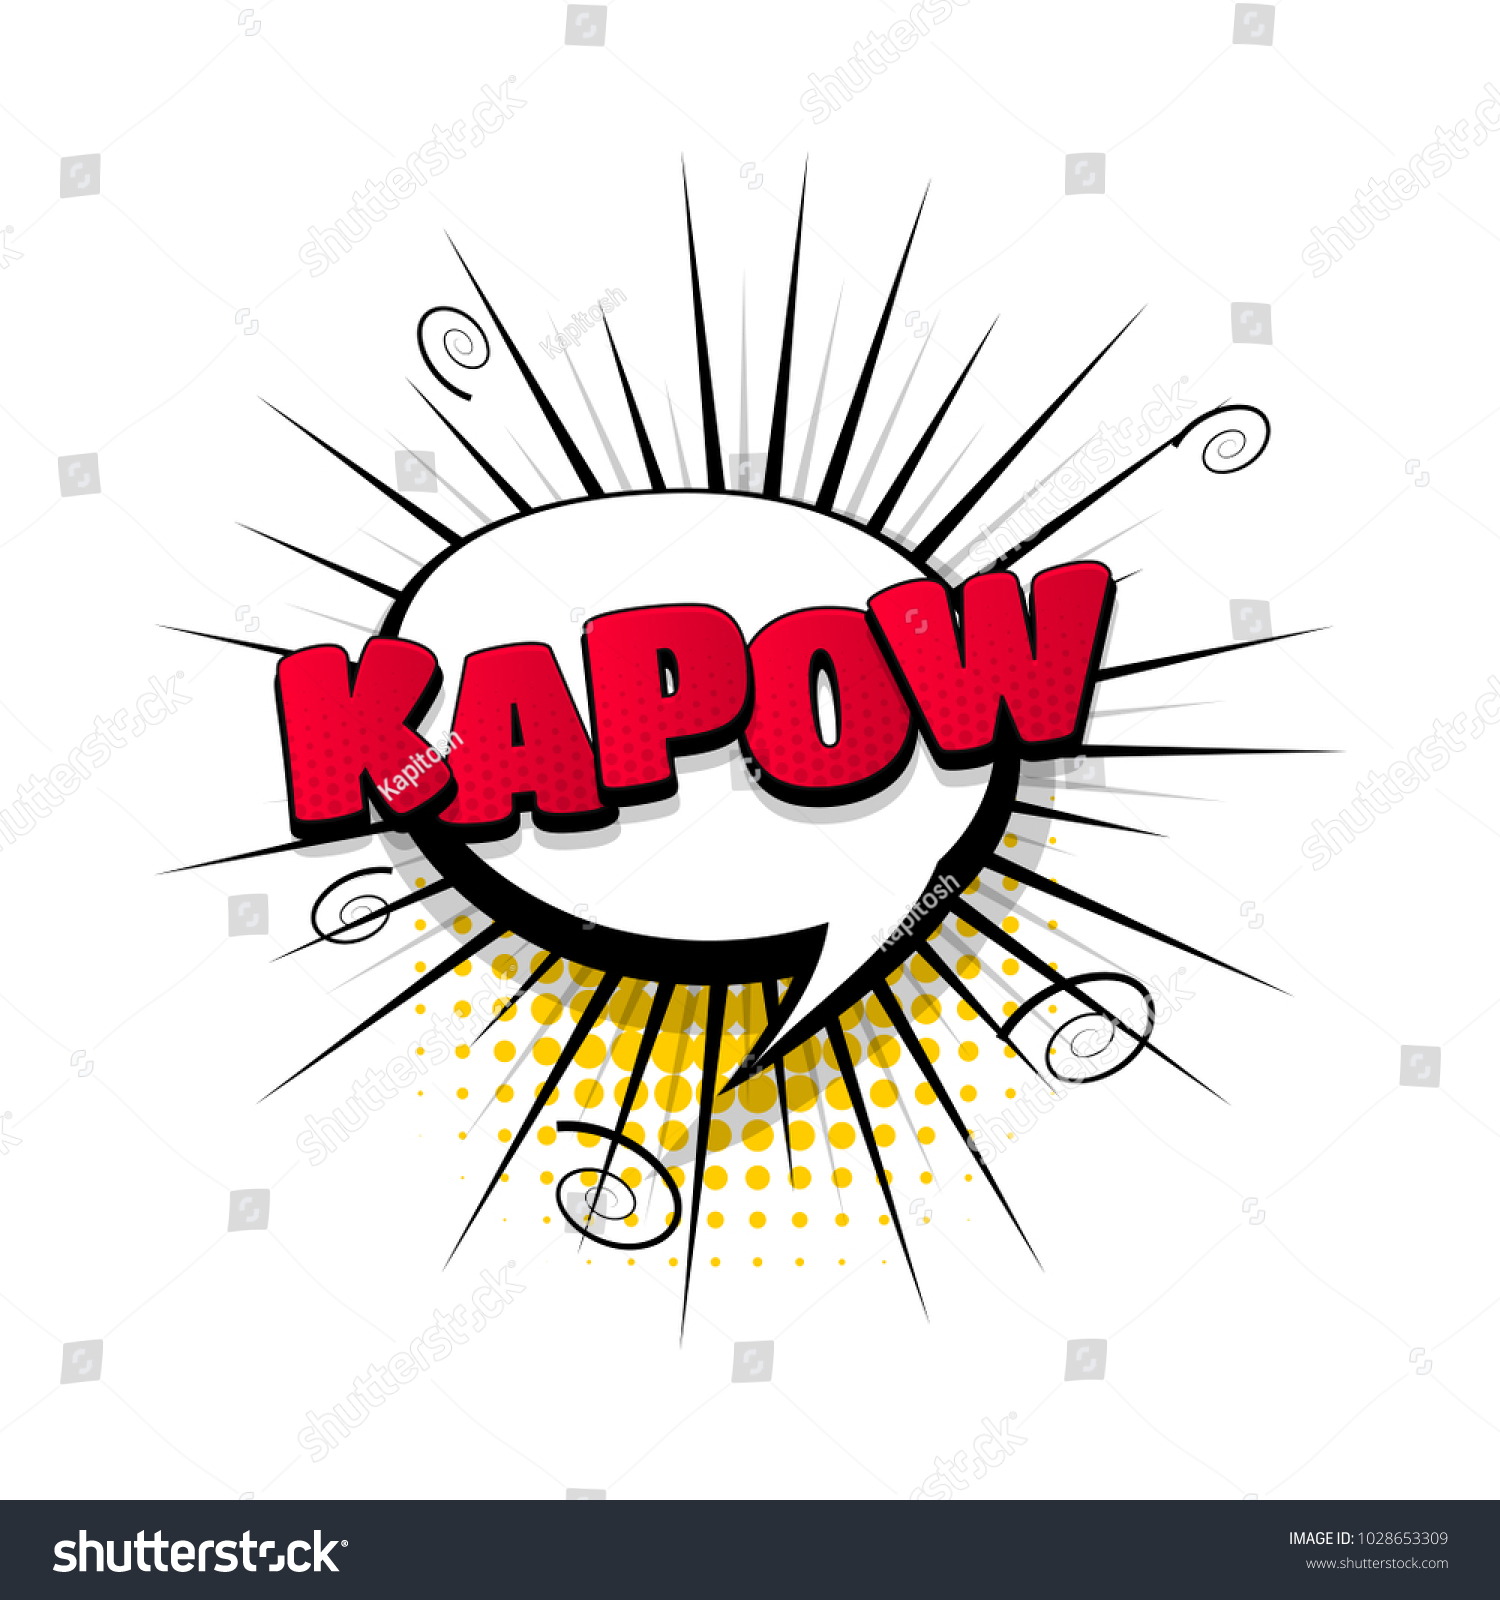 kapow hand drawn pictures effects template stock vector royalty